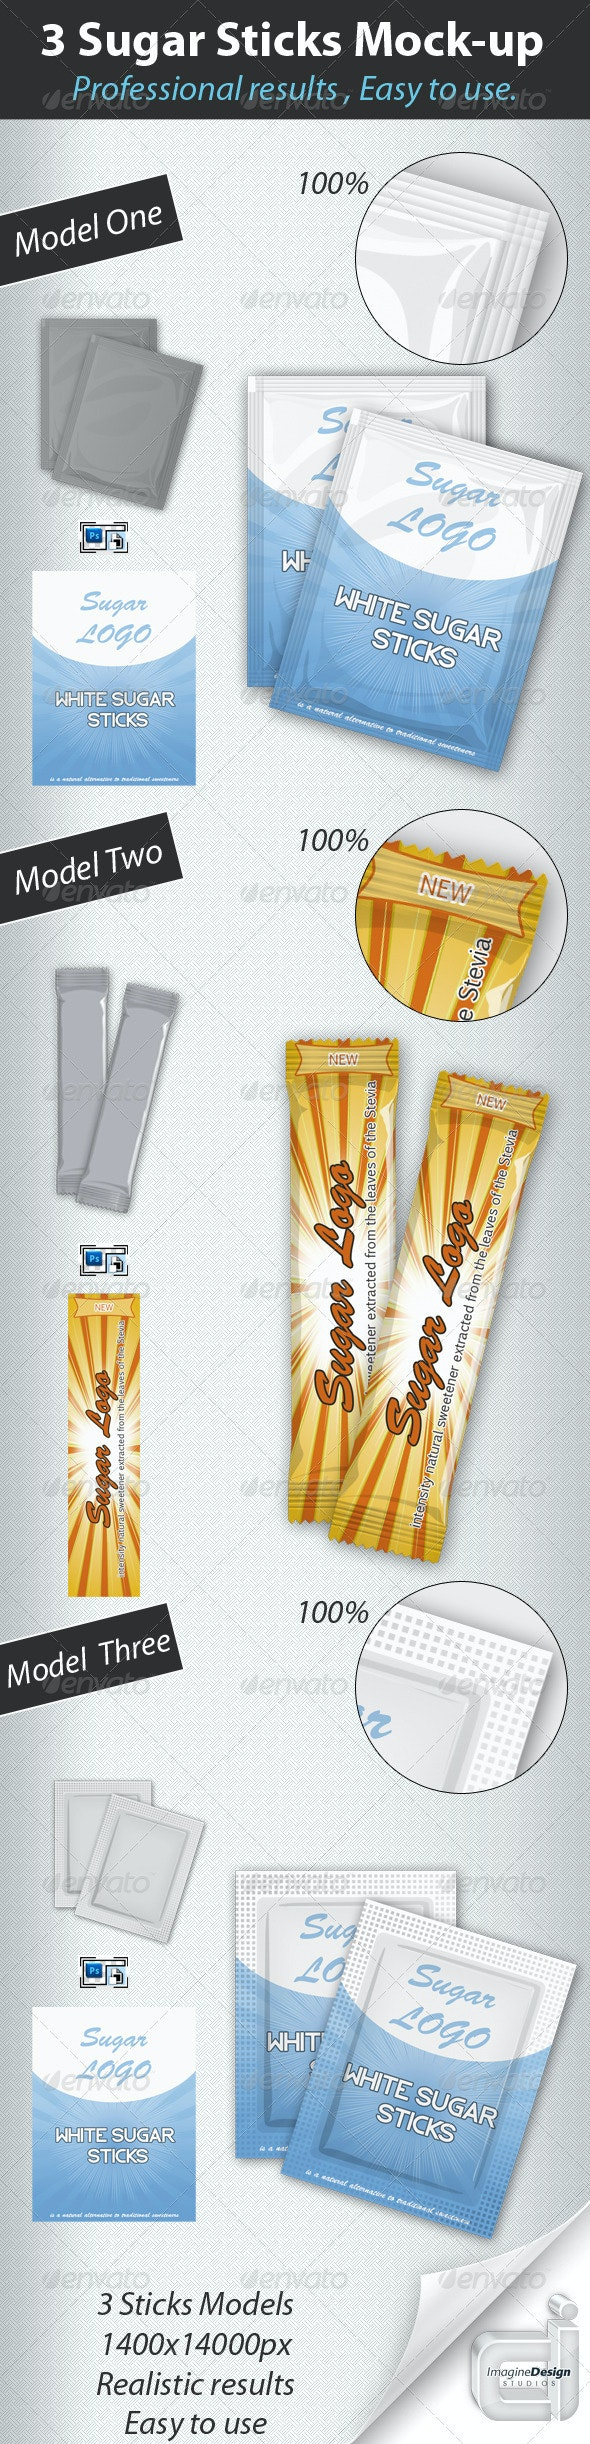 Professional 3 Sugar Sticks Mock-up - Food and Drink Packaging